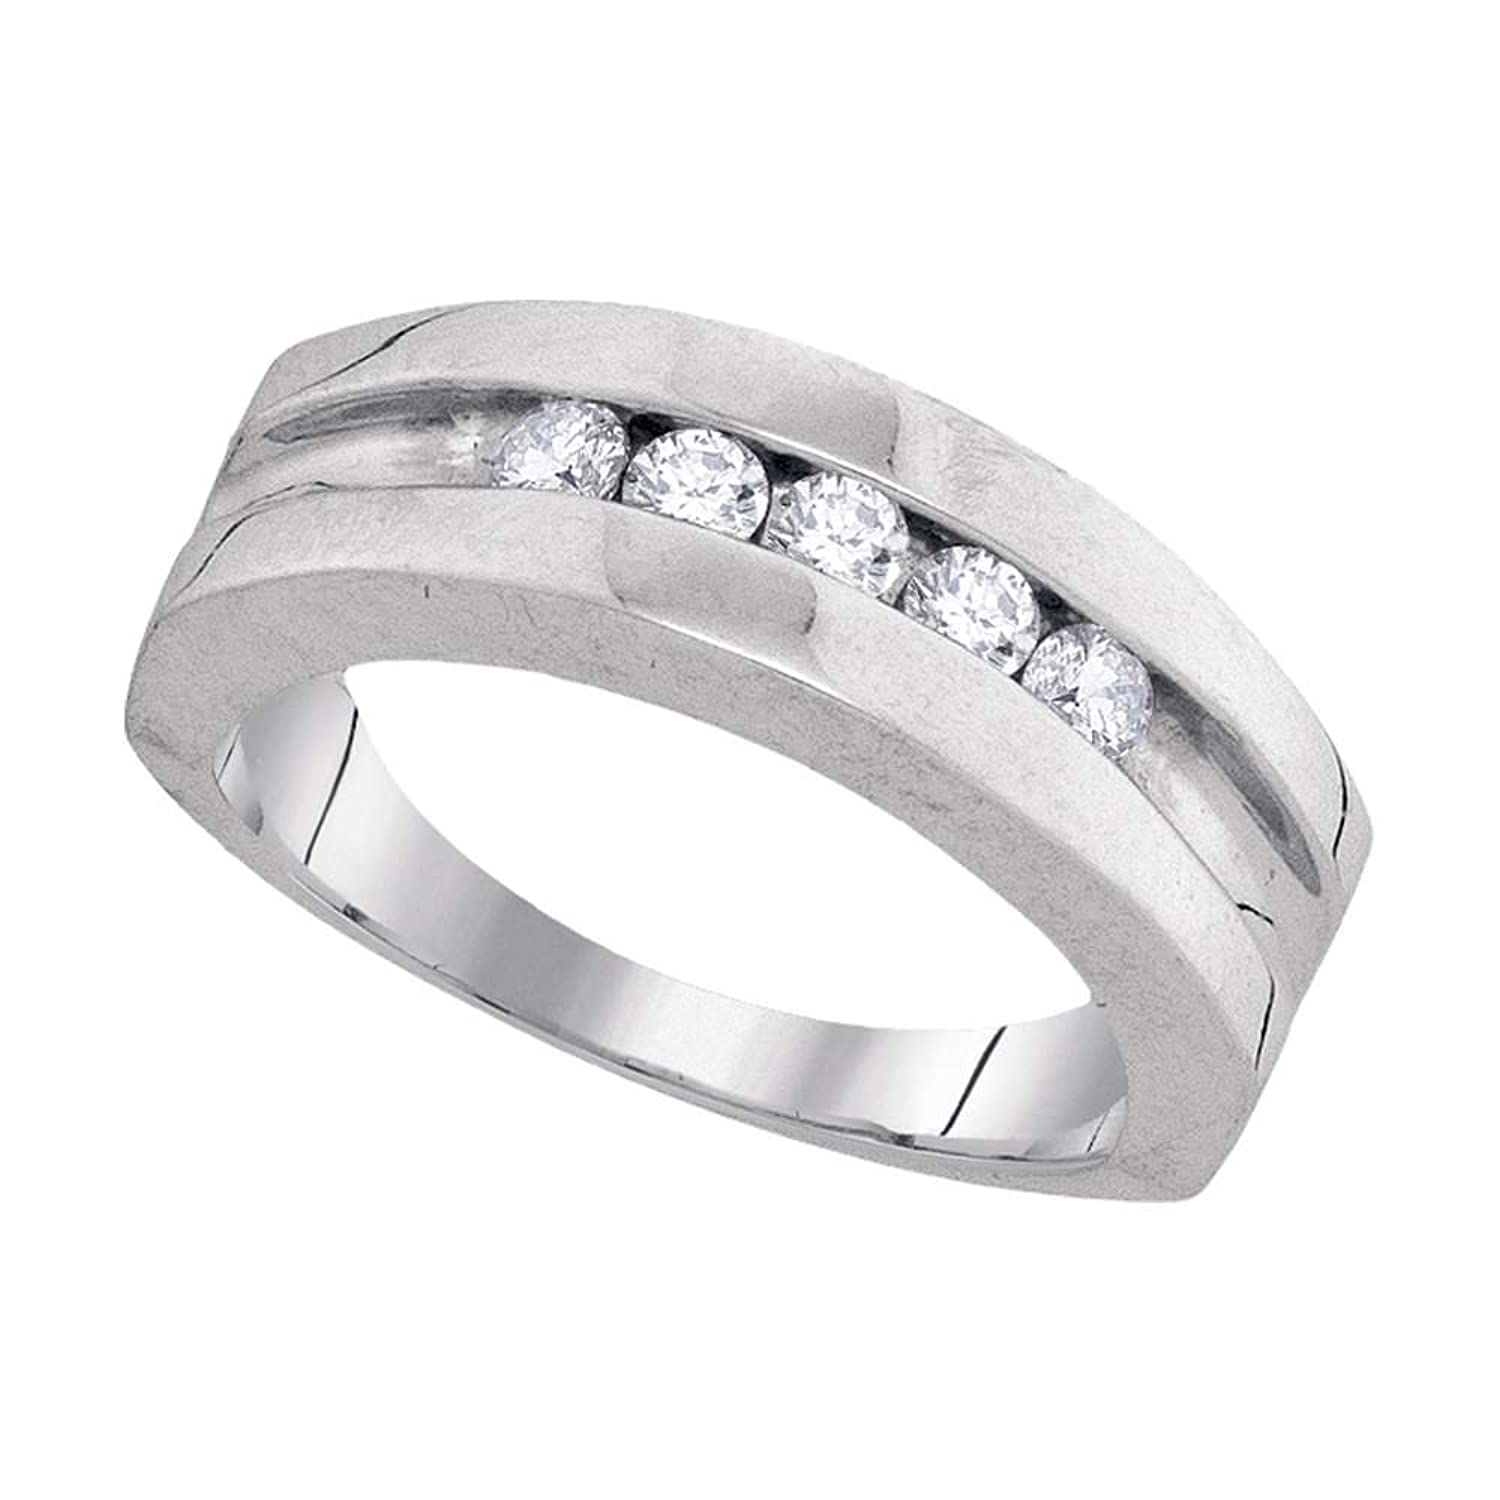 Mens Five Stone Diamond Wedding Band Solid 10k White Gold Anniversary Ring Round Channel Set 1/2 ctw